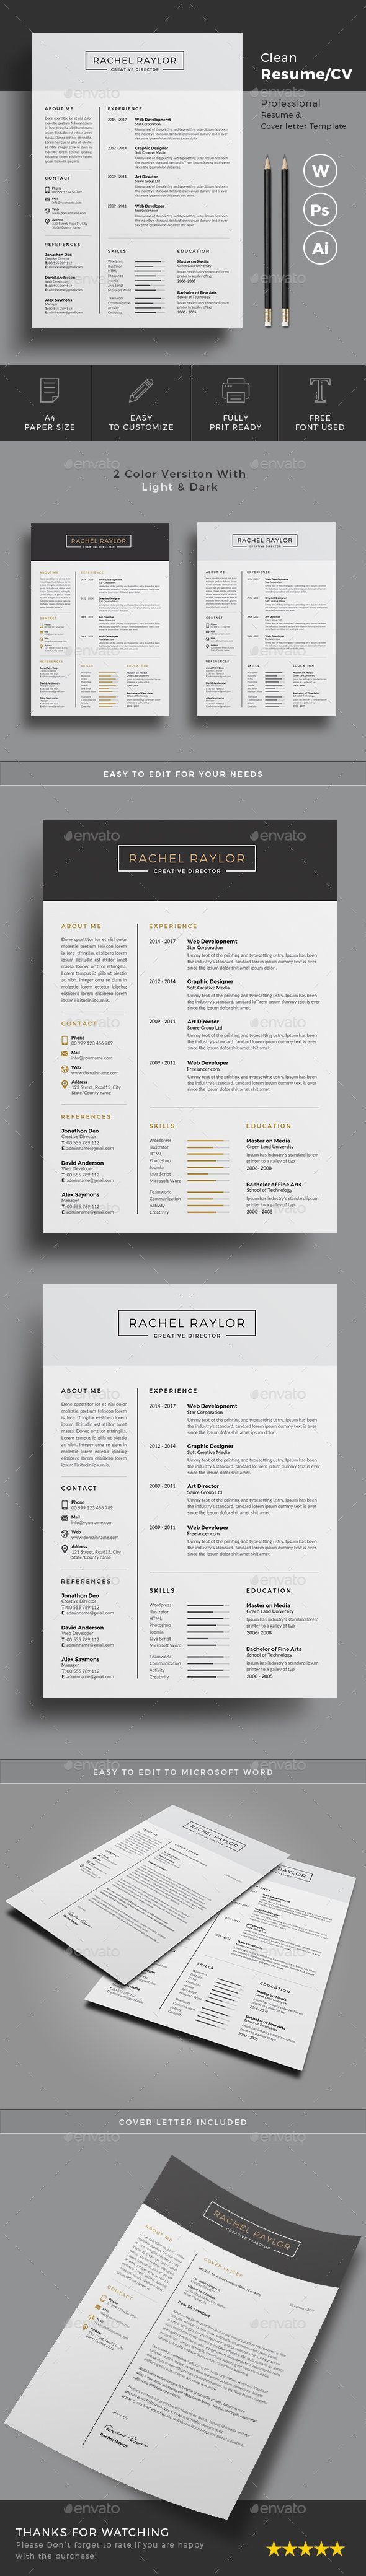 graphicriver cv telecharger